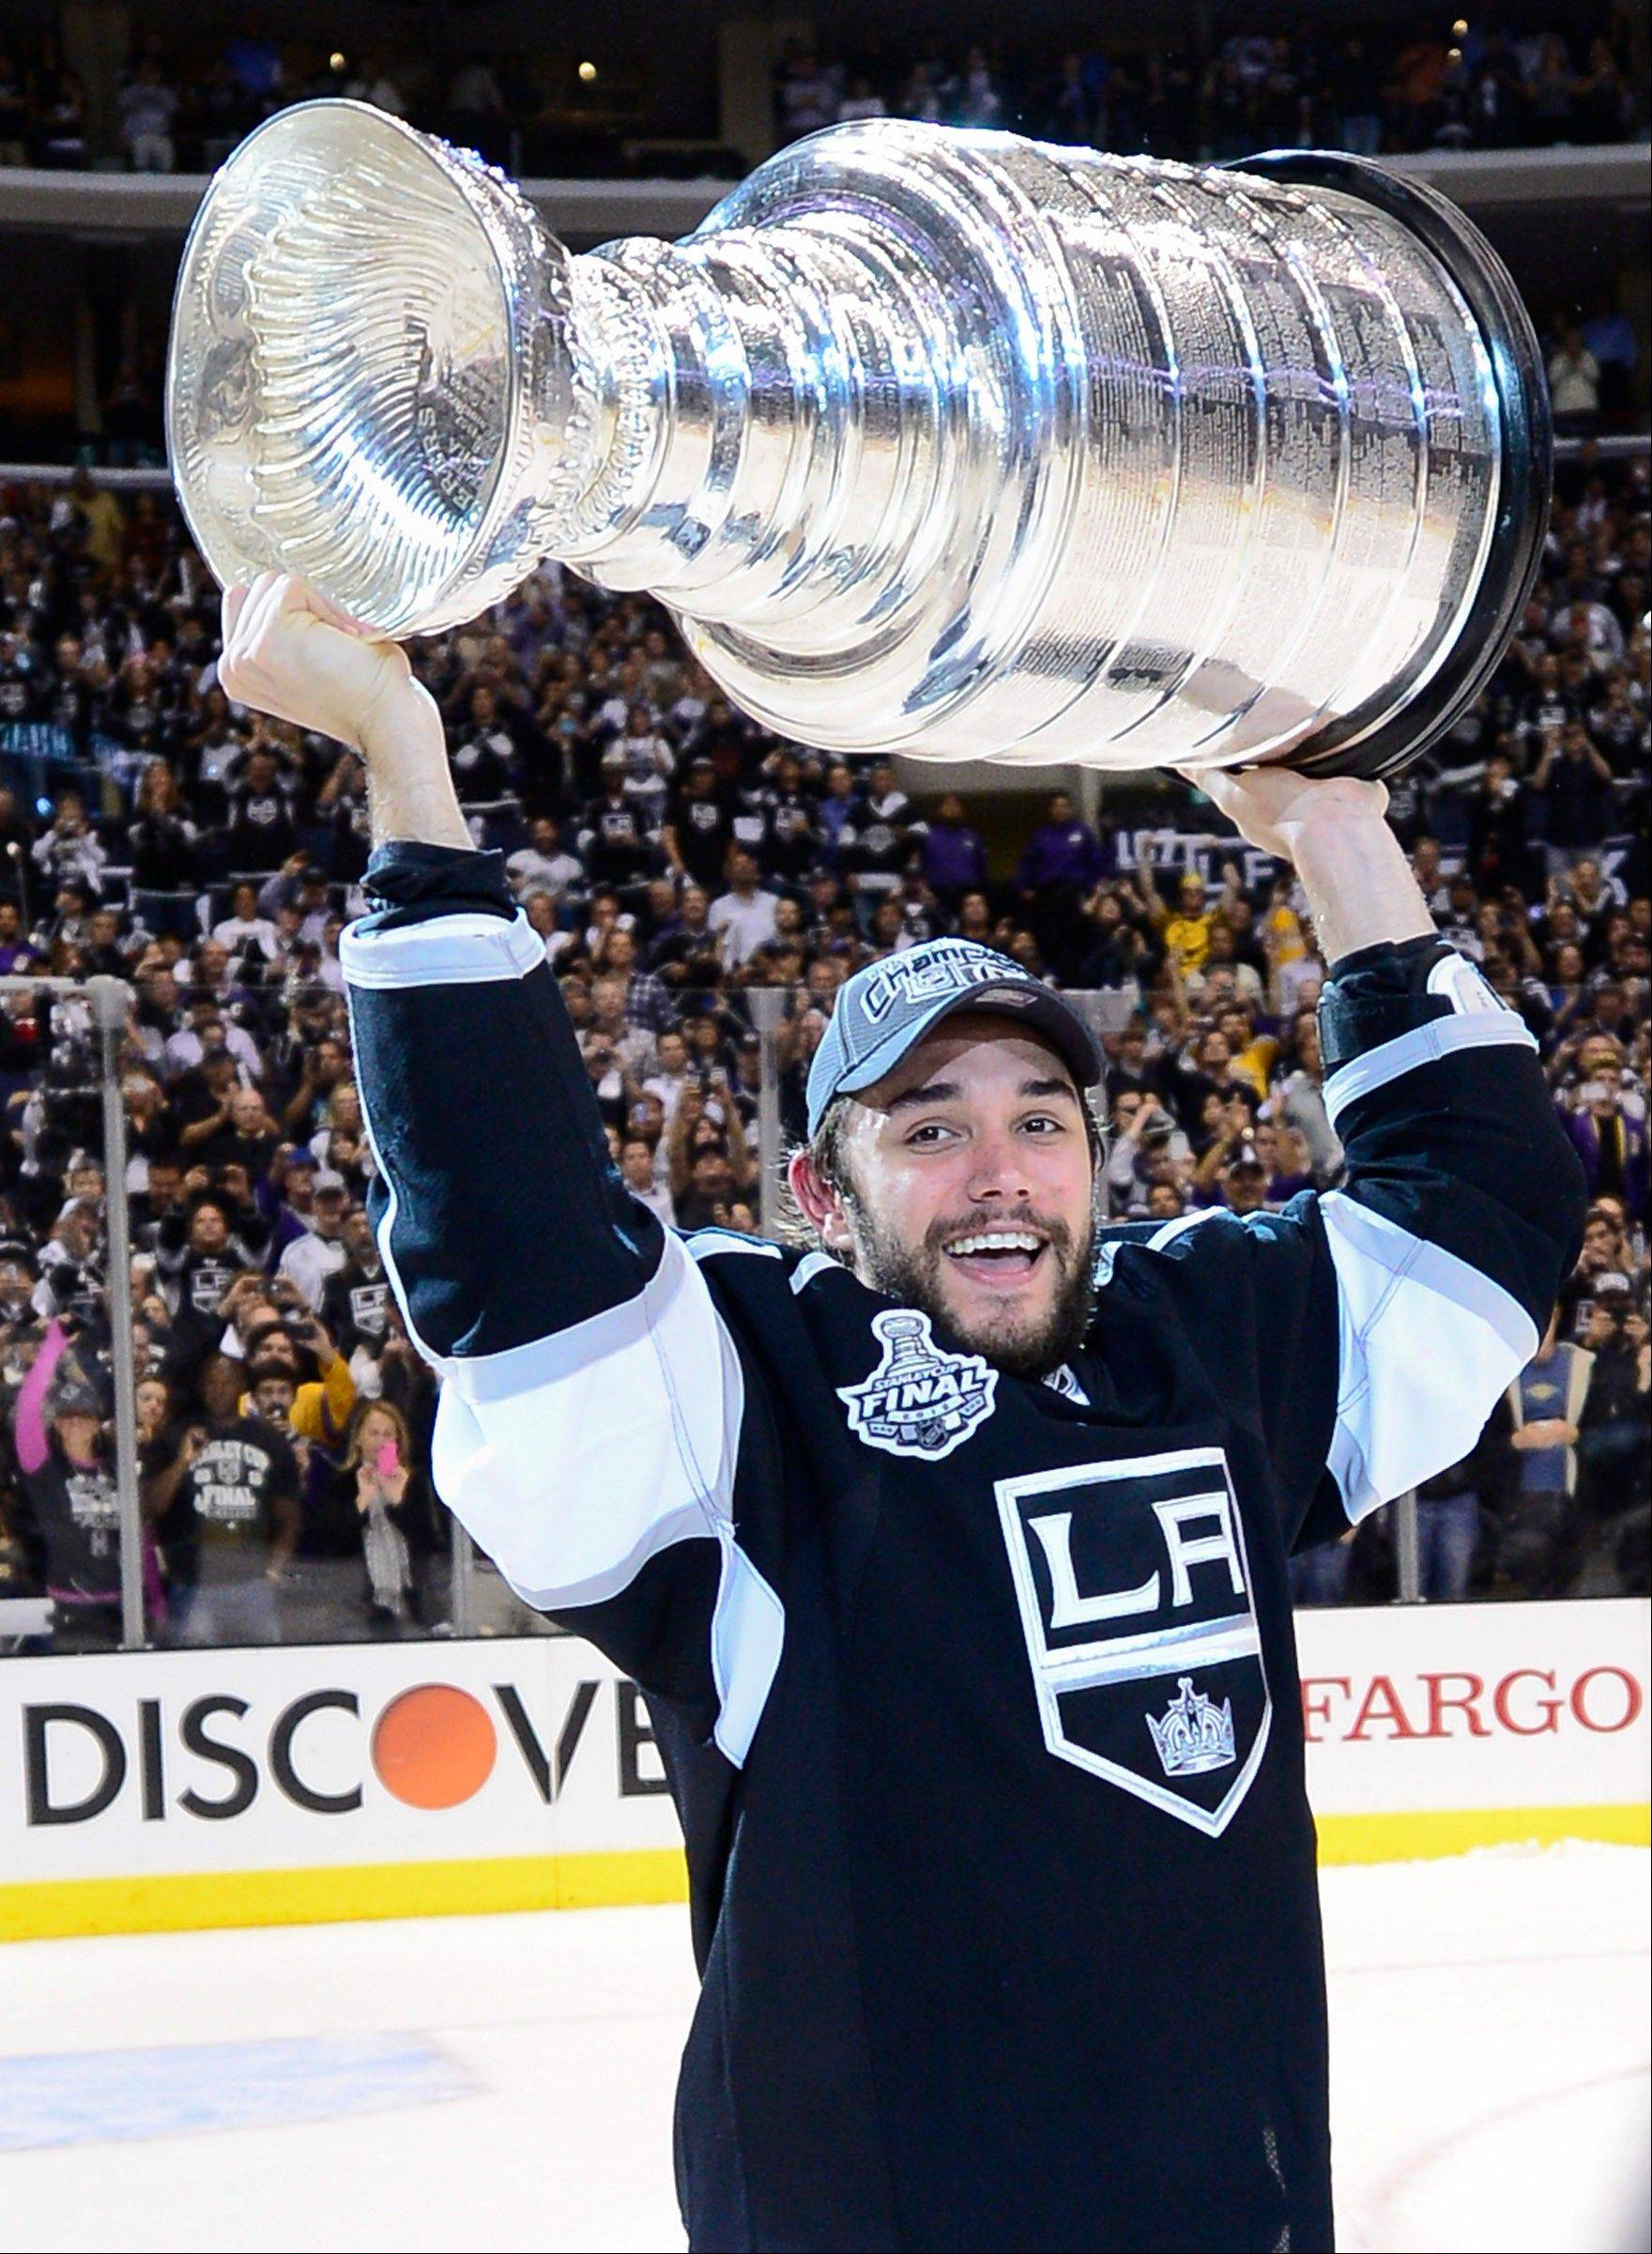 Los Angeles Kings defenseman Slava Voynov holds up the Stanley Cup Monday after the Kings beat the New Jersey Devils 6-1.